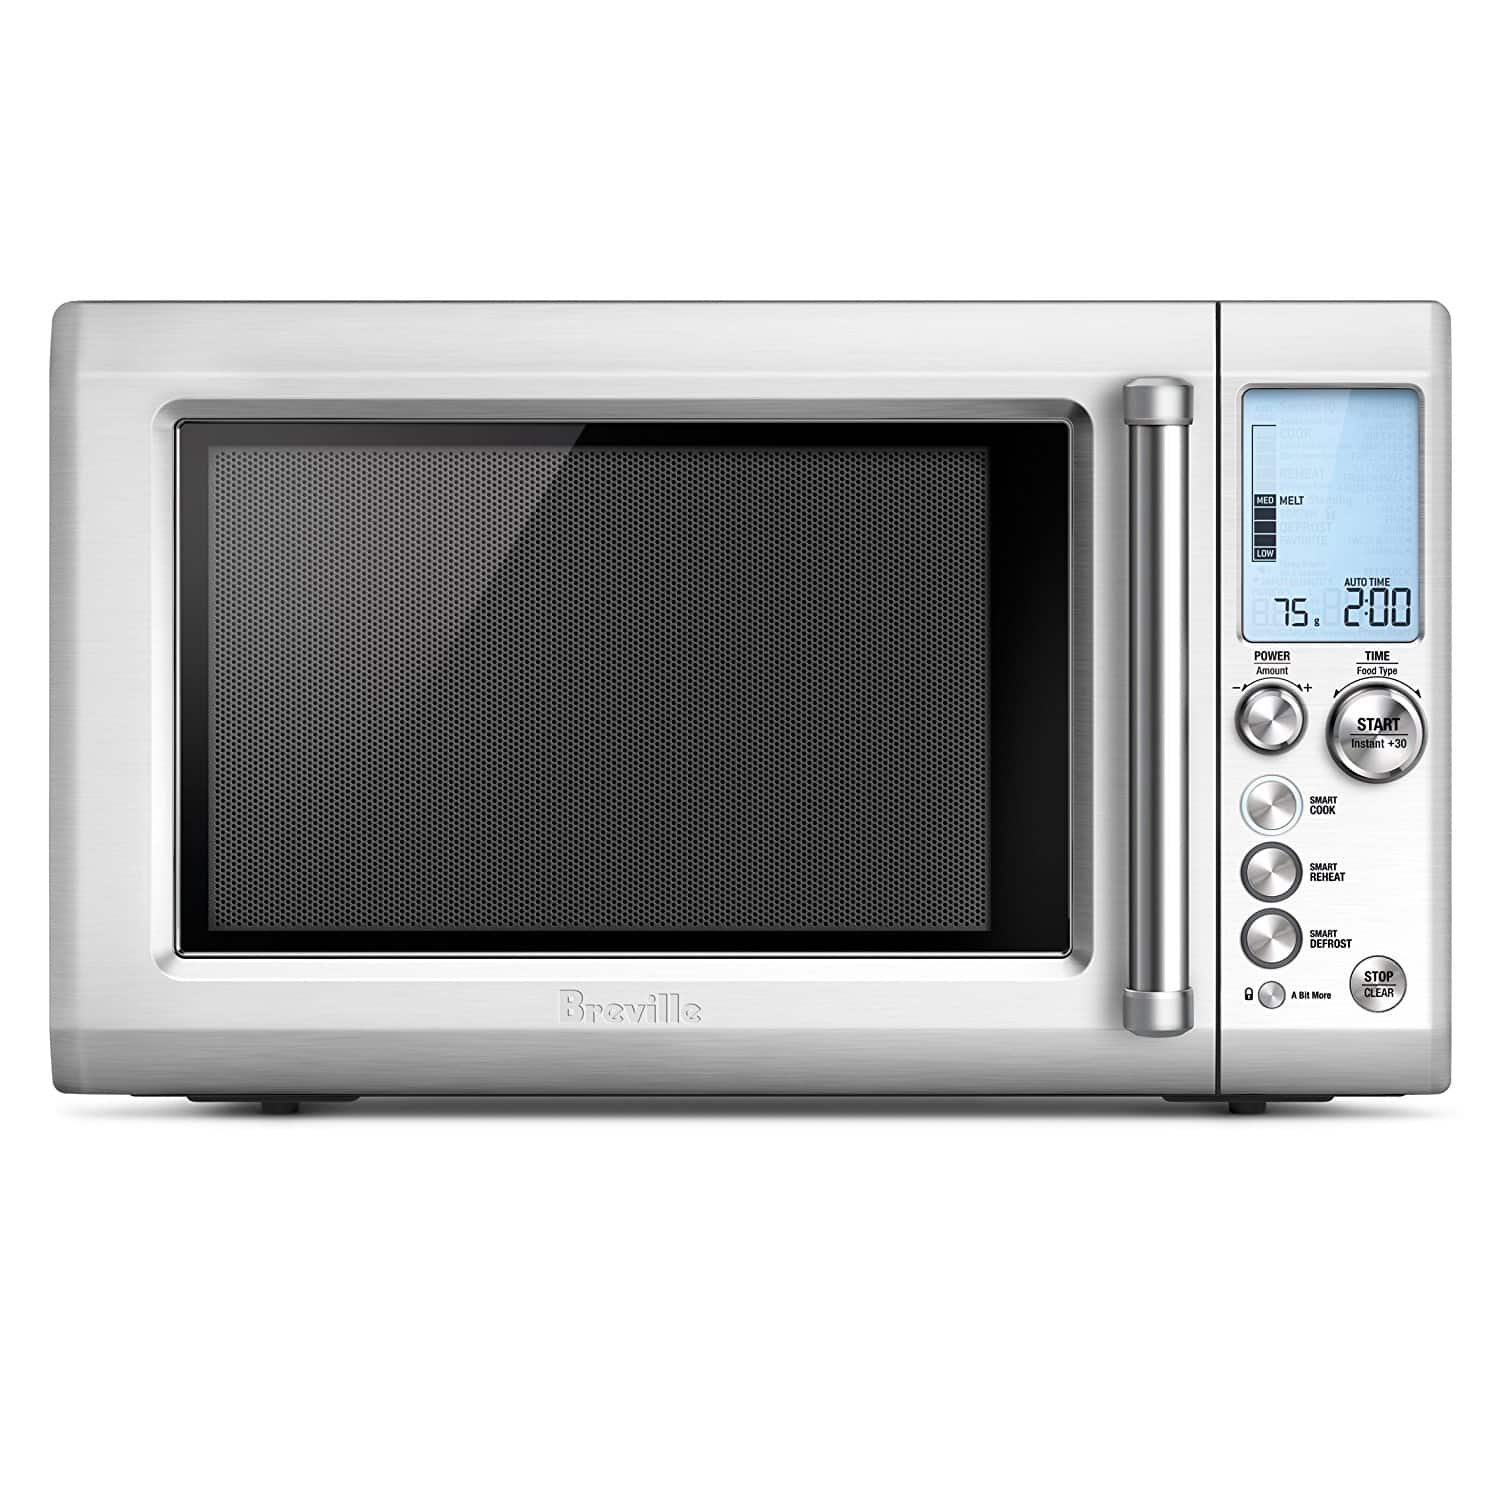 Breville Quick Touch Microwave $200